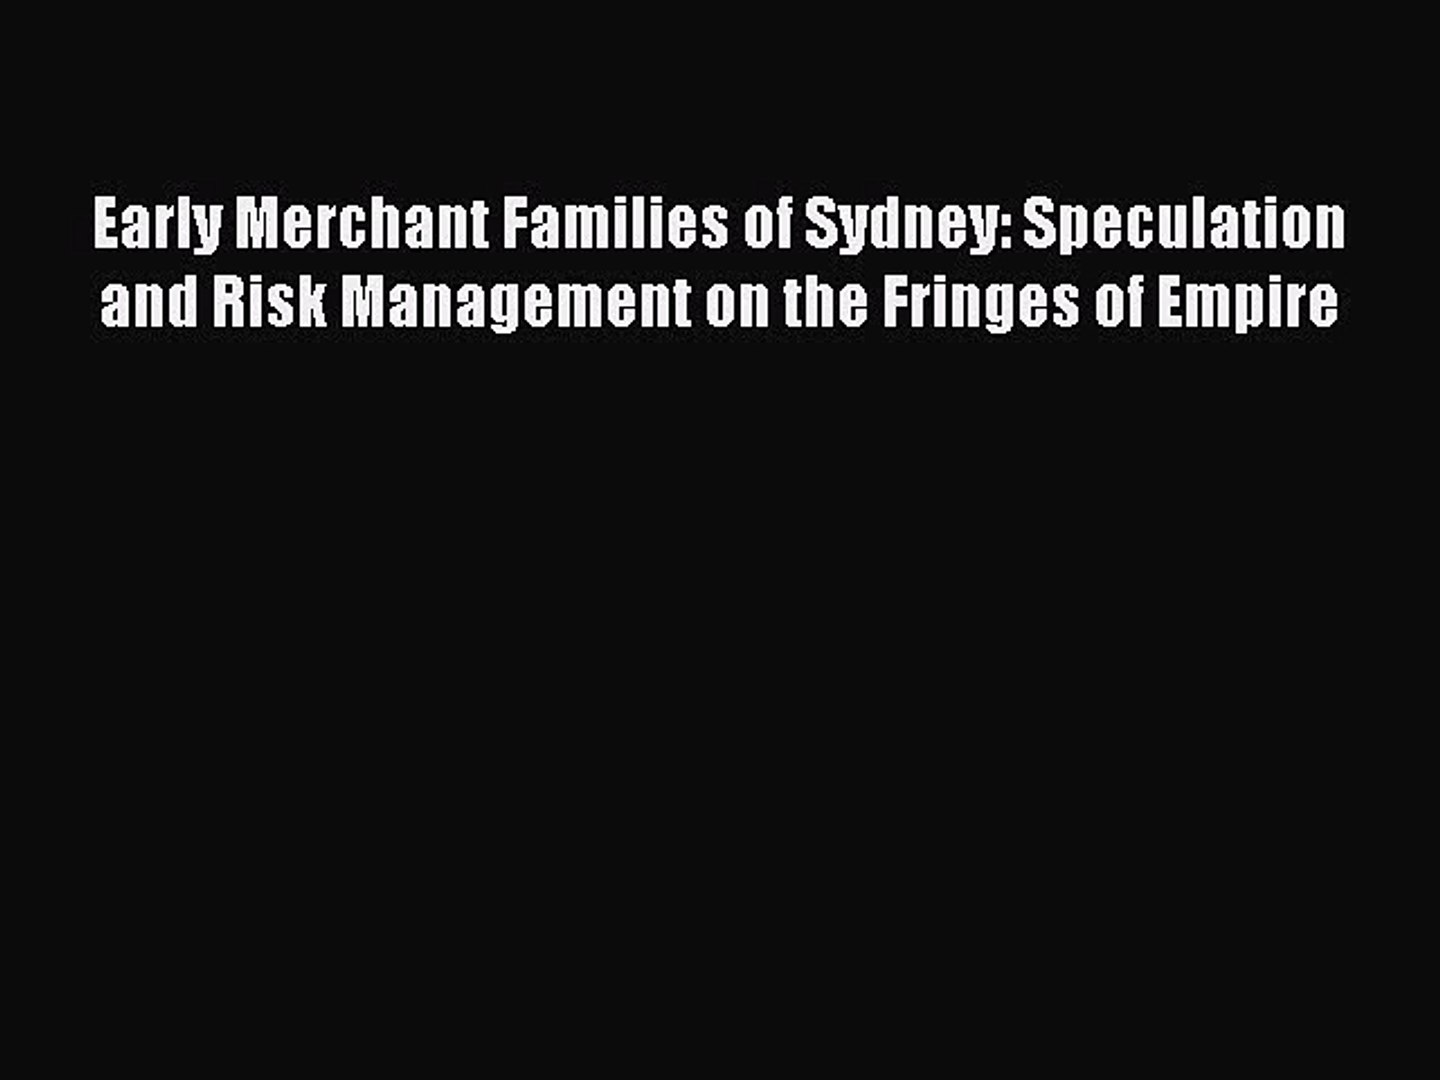 Read Early Merchant Families of Sydney: Speculation and Risk Management on the Fringes of Empire